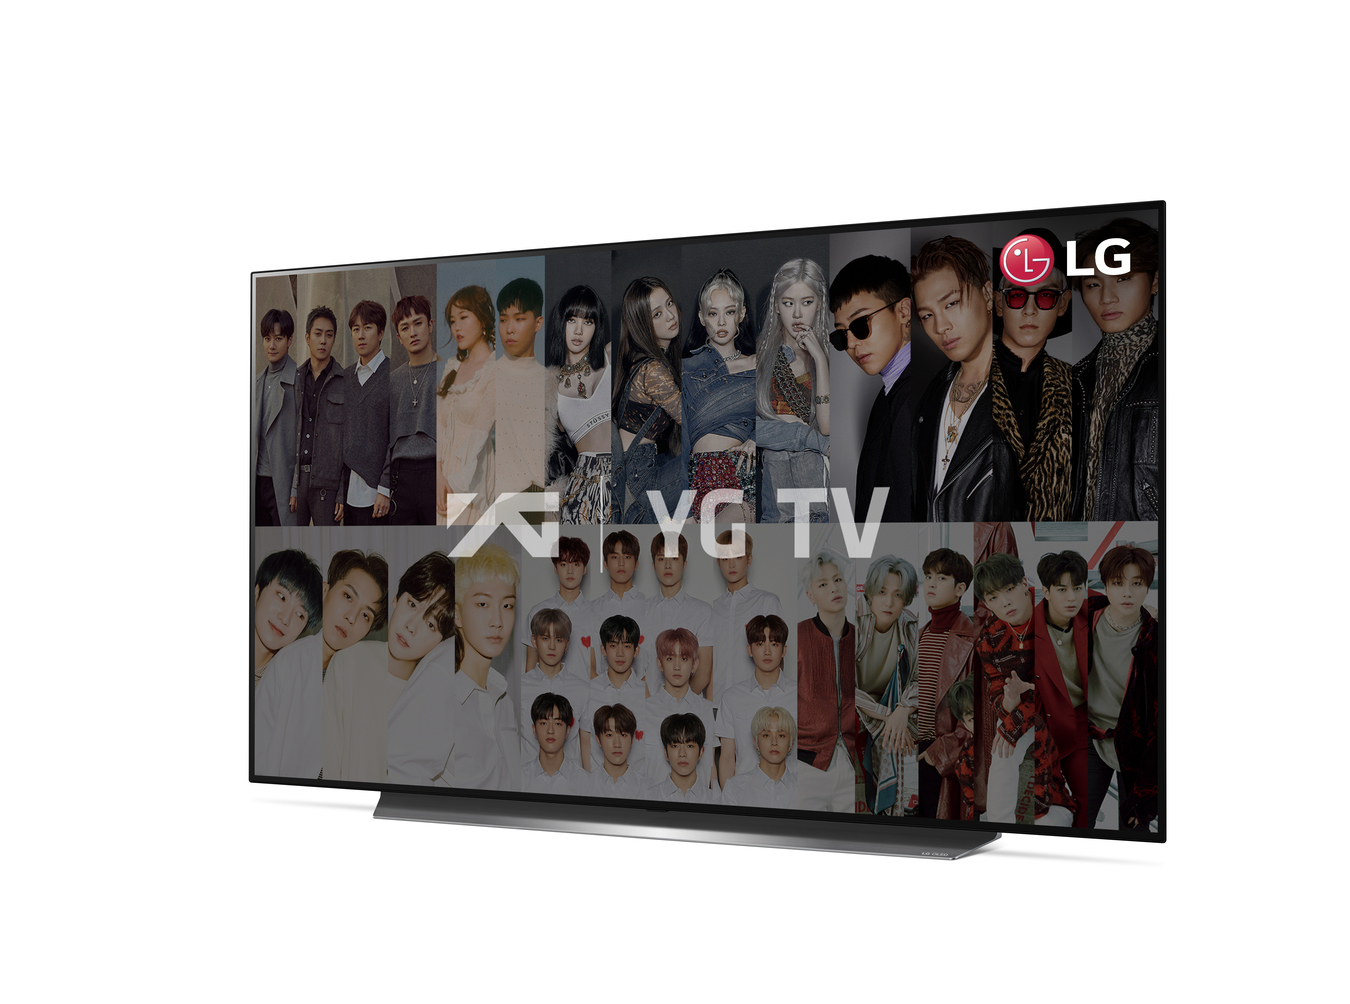 LG Smart TV displaying YG TV stars to celebrate the company's new partnership with New ID that brings its content including YG Entertainment's to LG TVs